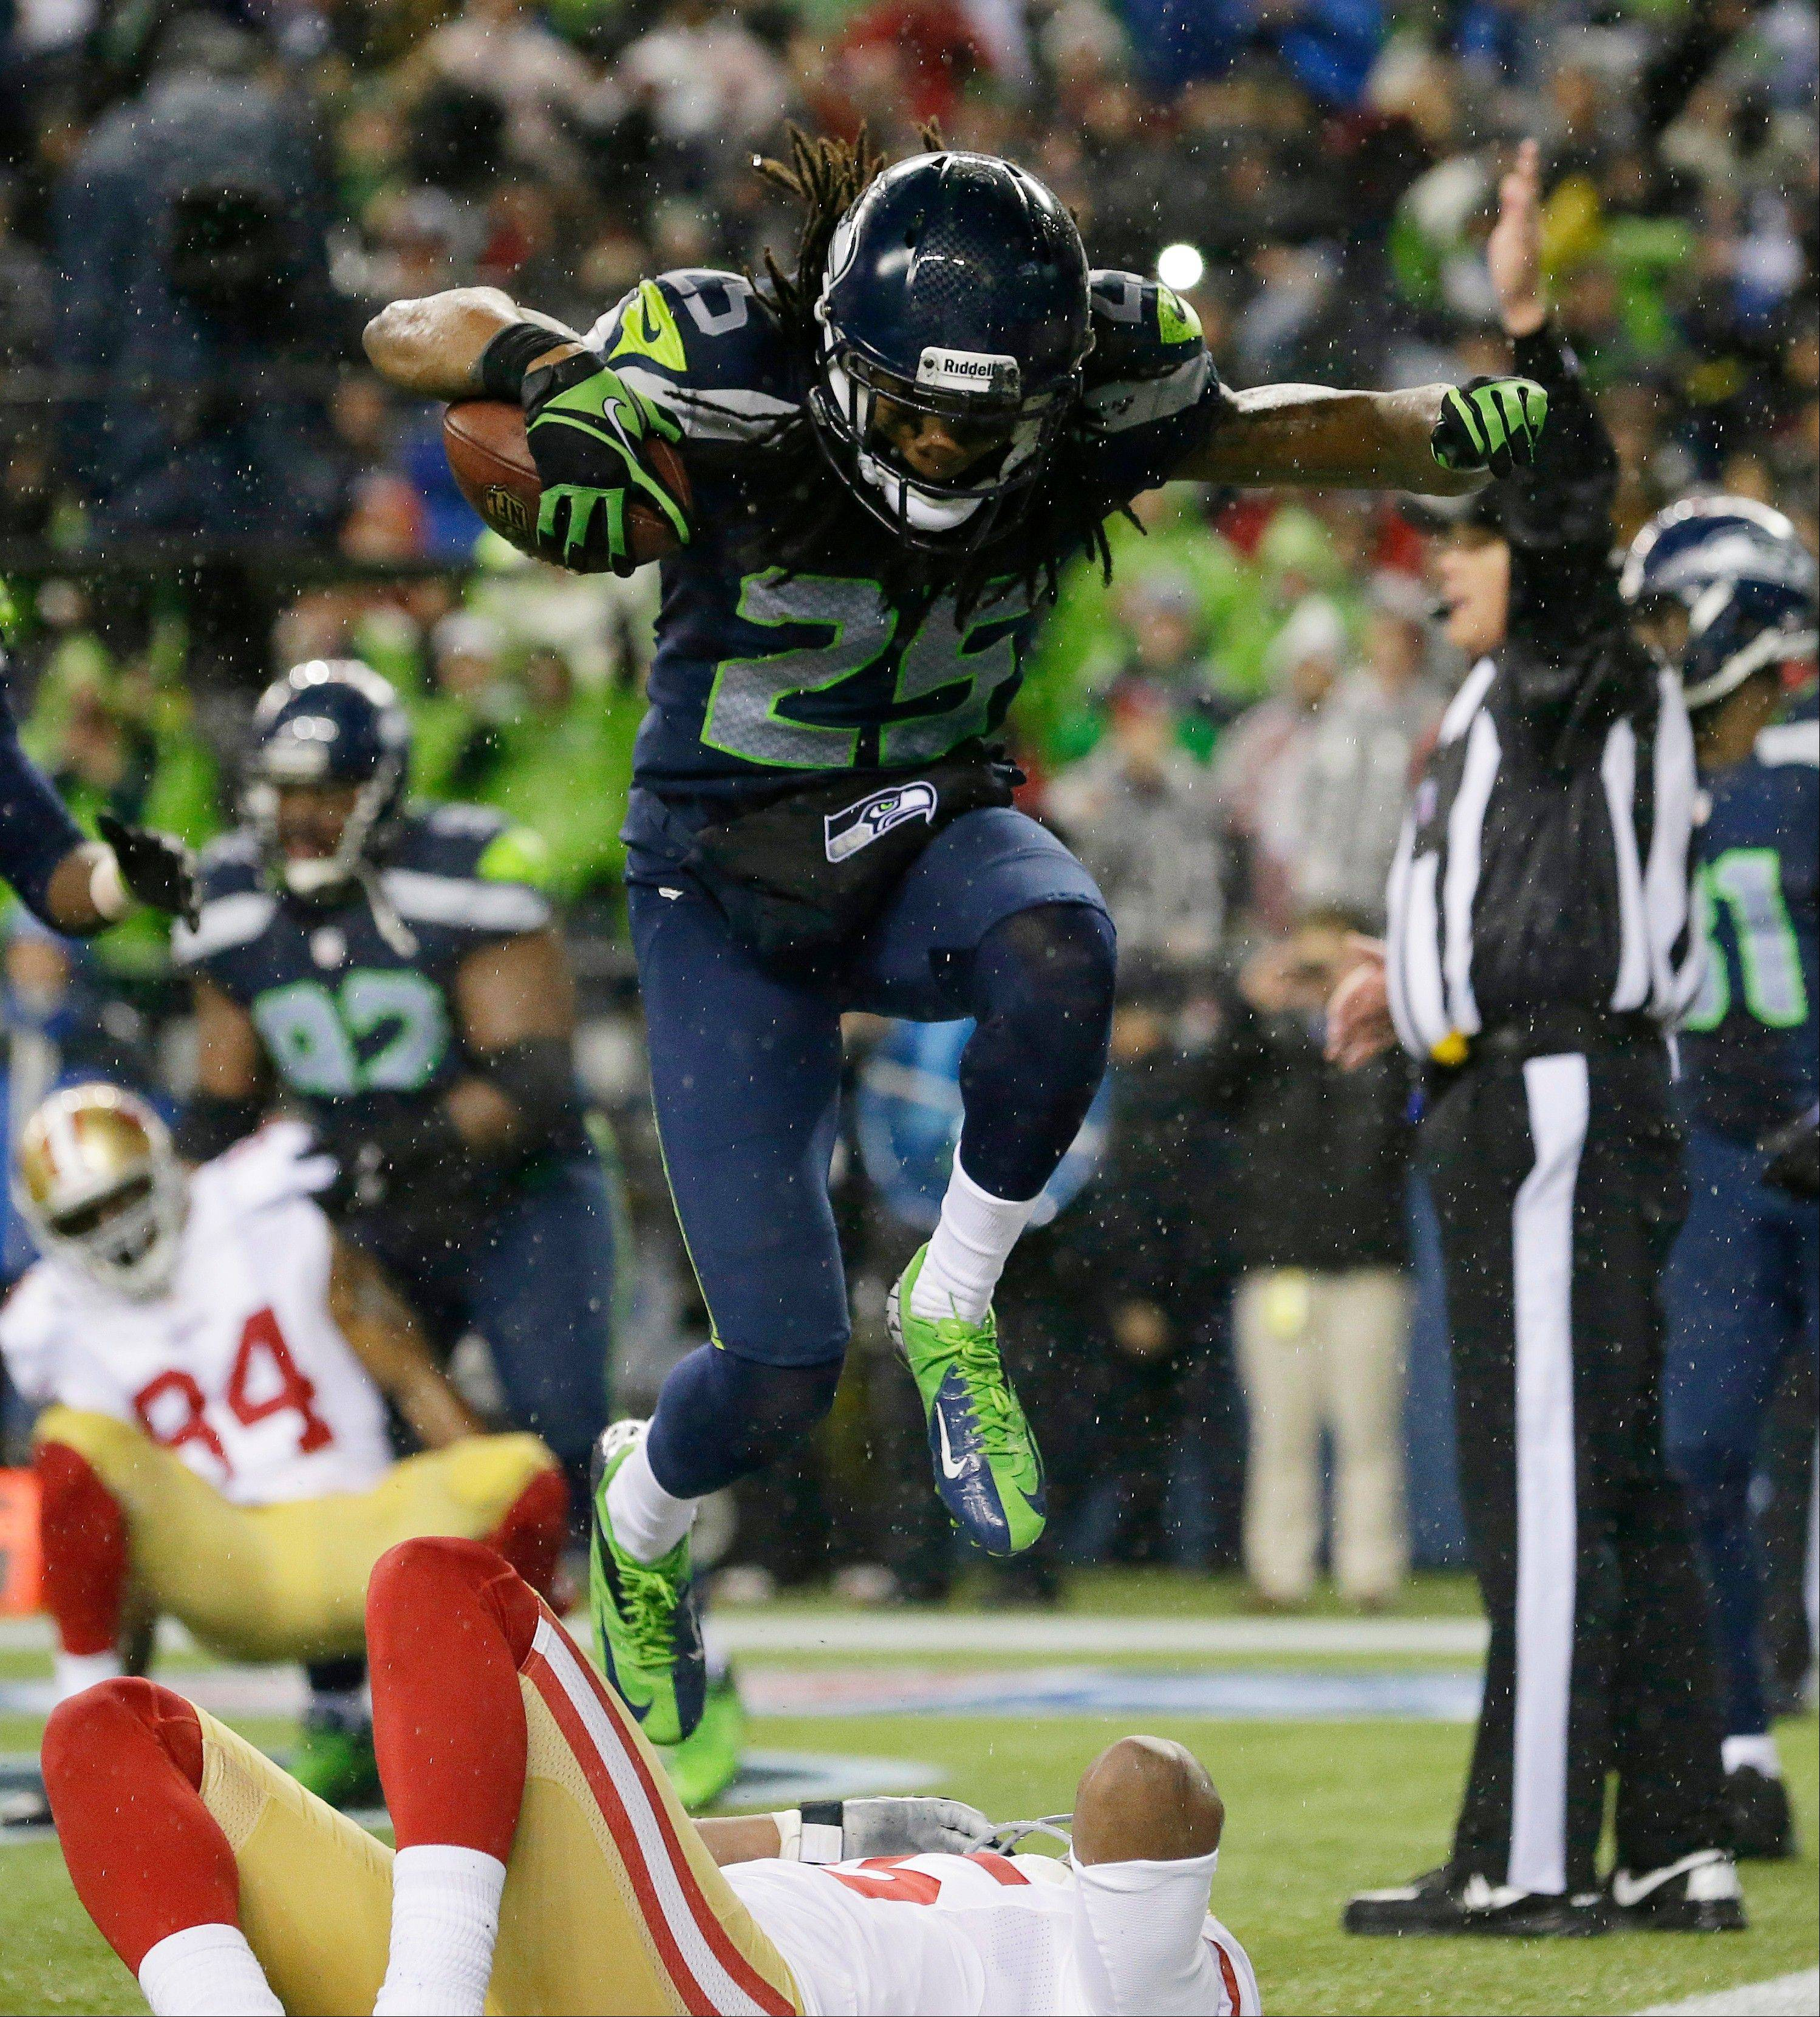 Seattle Seahawks� Richard Sherman jumps over San Francisco 49ers� Michael Crabtree as Sherman celebrates his interception in the second half of an NFL football game, Sunday, Dec. 23, 2012, in Seattle.